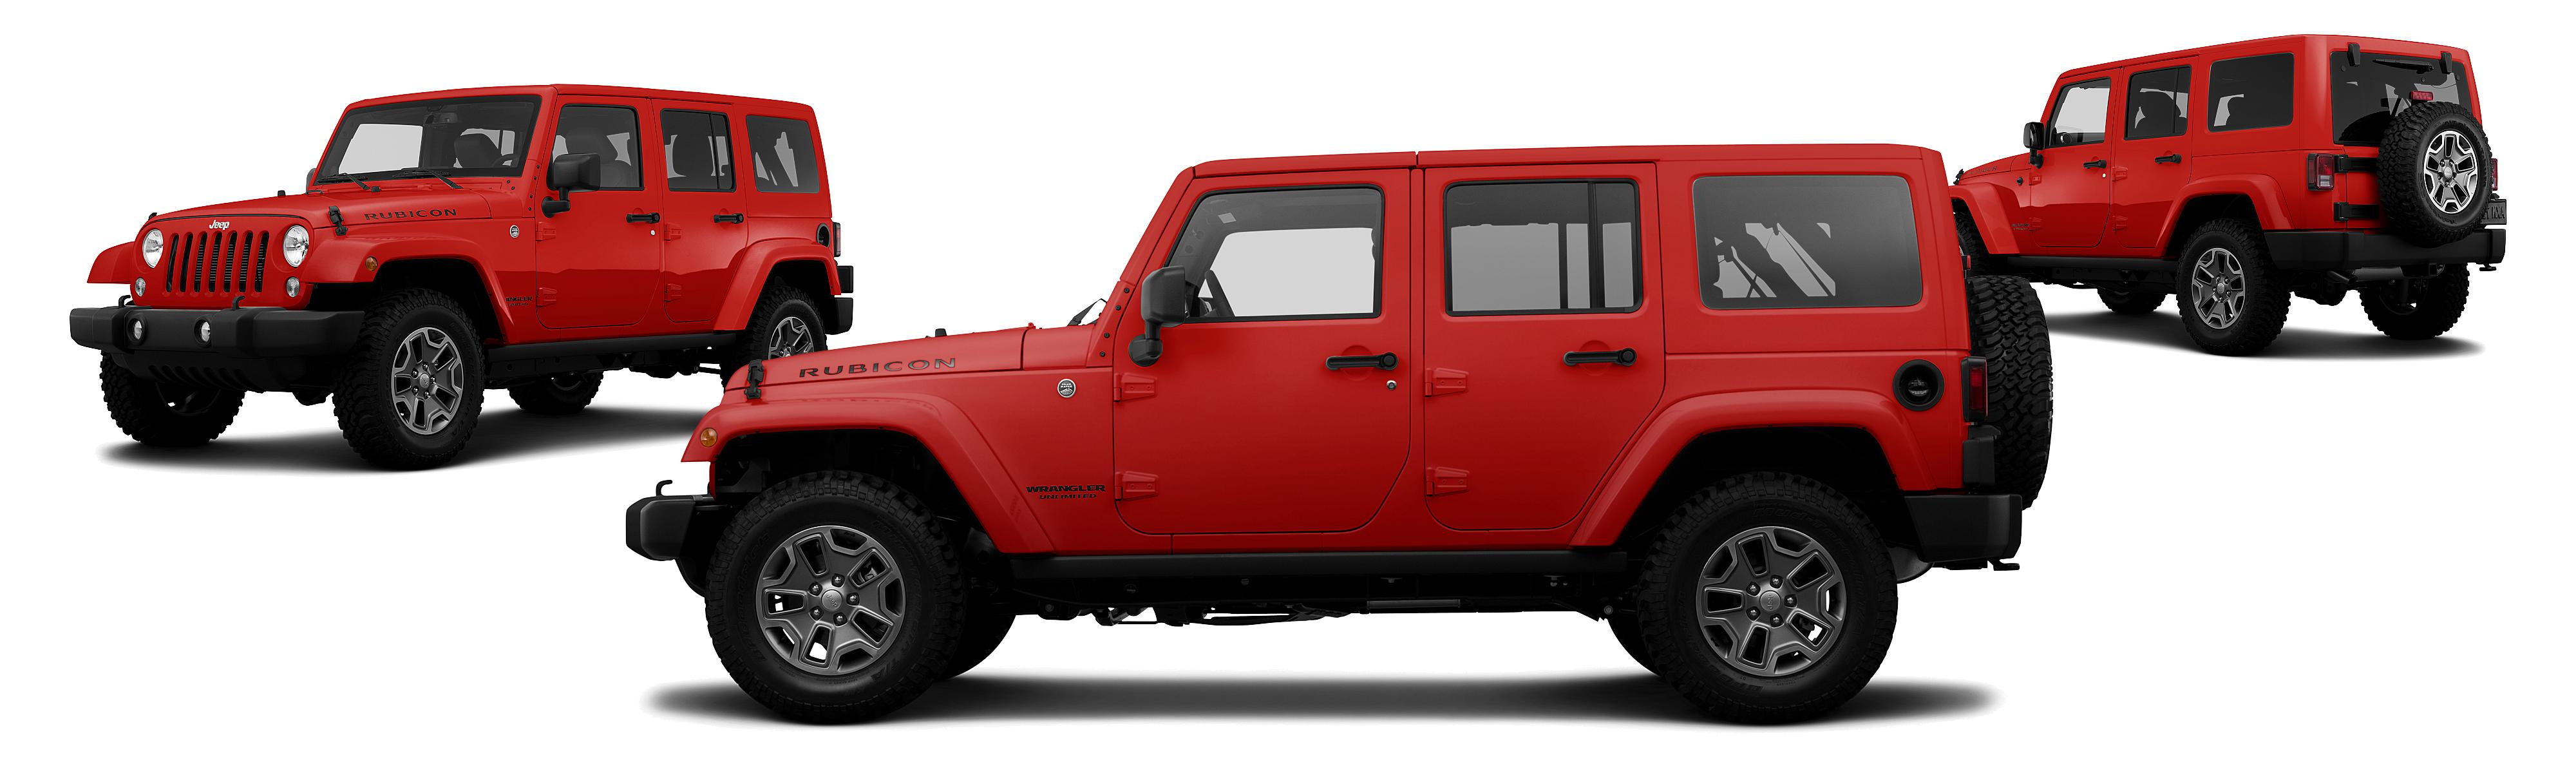 2014 Jeep Wrangler Unlimited 4x4 Rubicon 4dr SUV Research GrooveCar